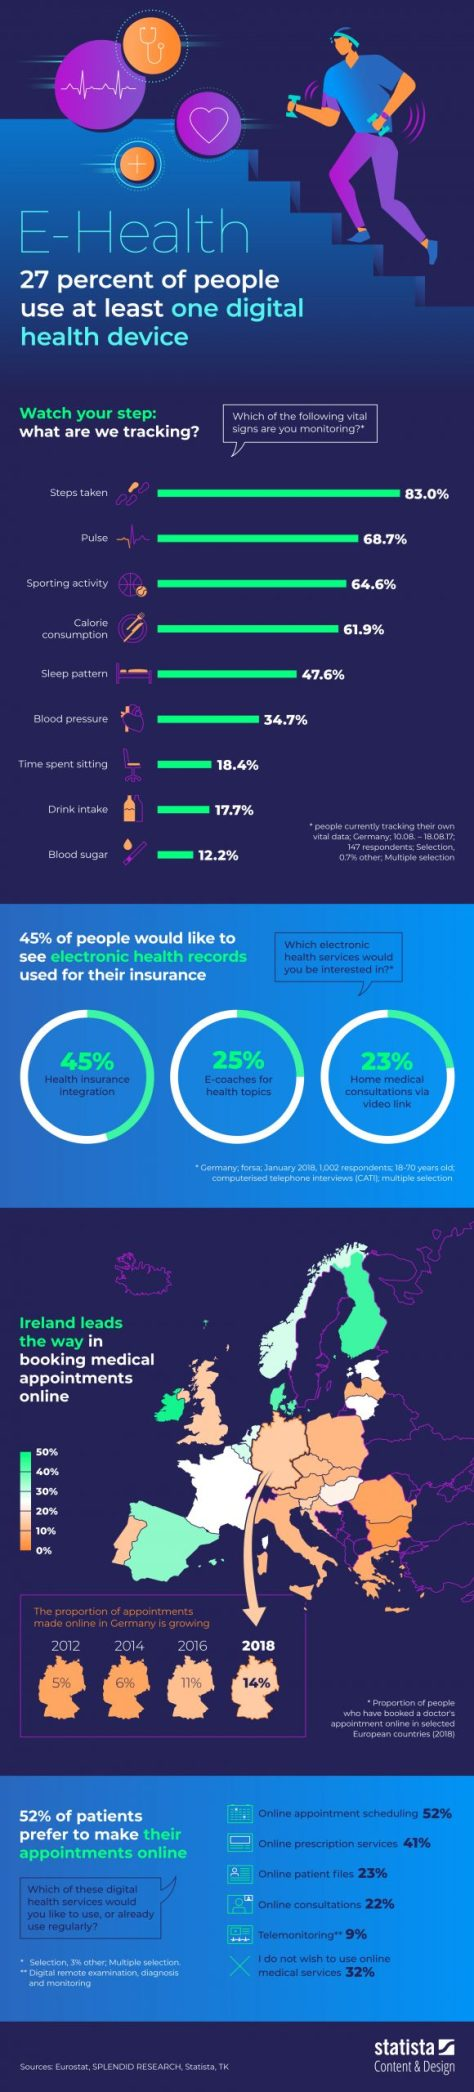 E-Health Infographic Digital Health Devices Statista Feb 20 2020